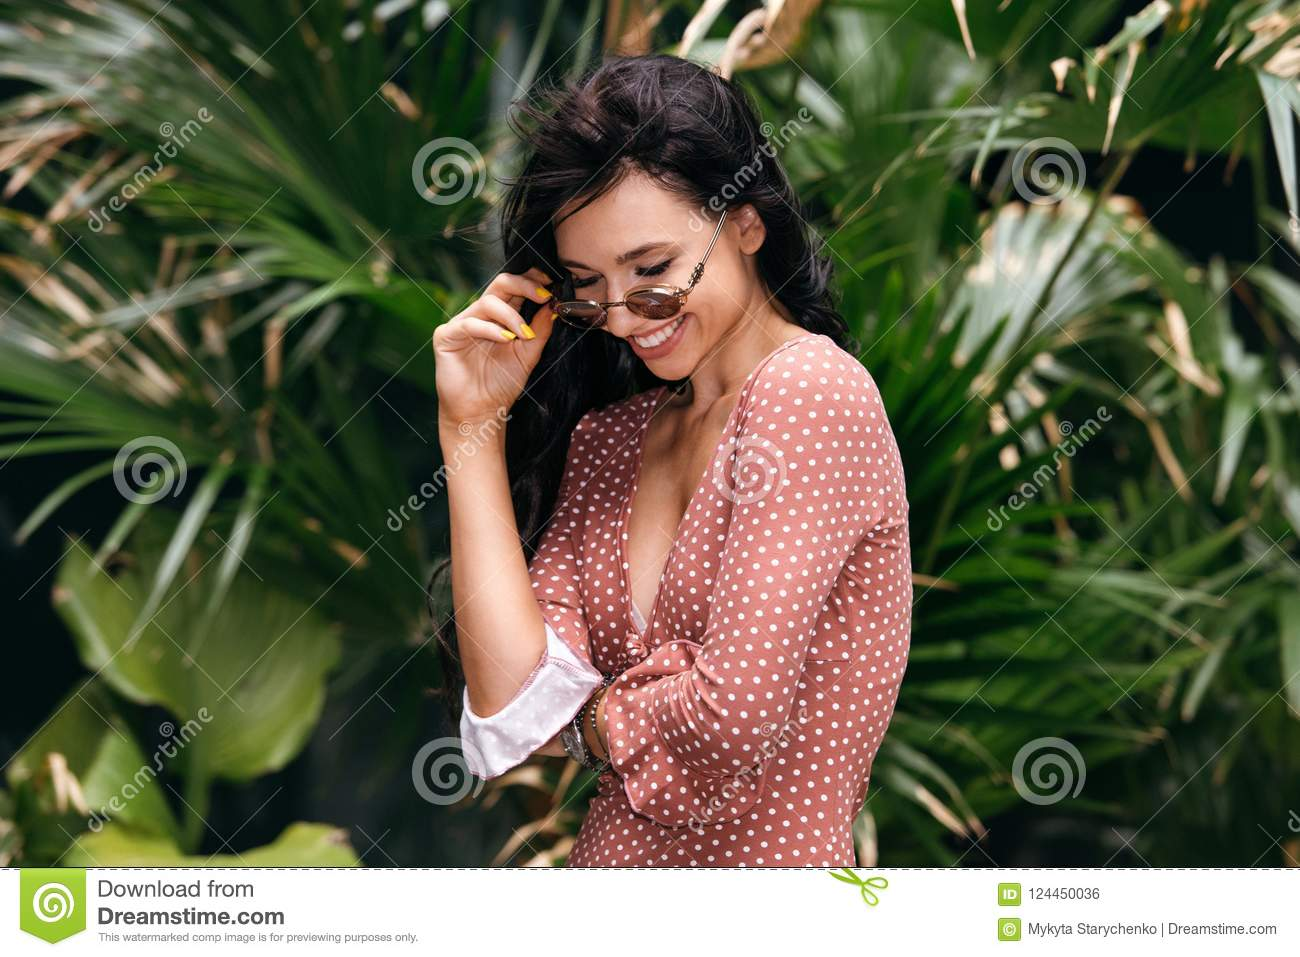 Beautiful woman enjoy travel lifestyle in tropical forest wearing sunglasses and summer dress.